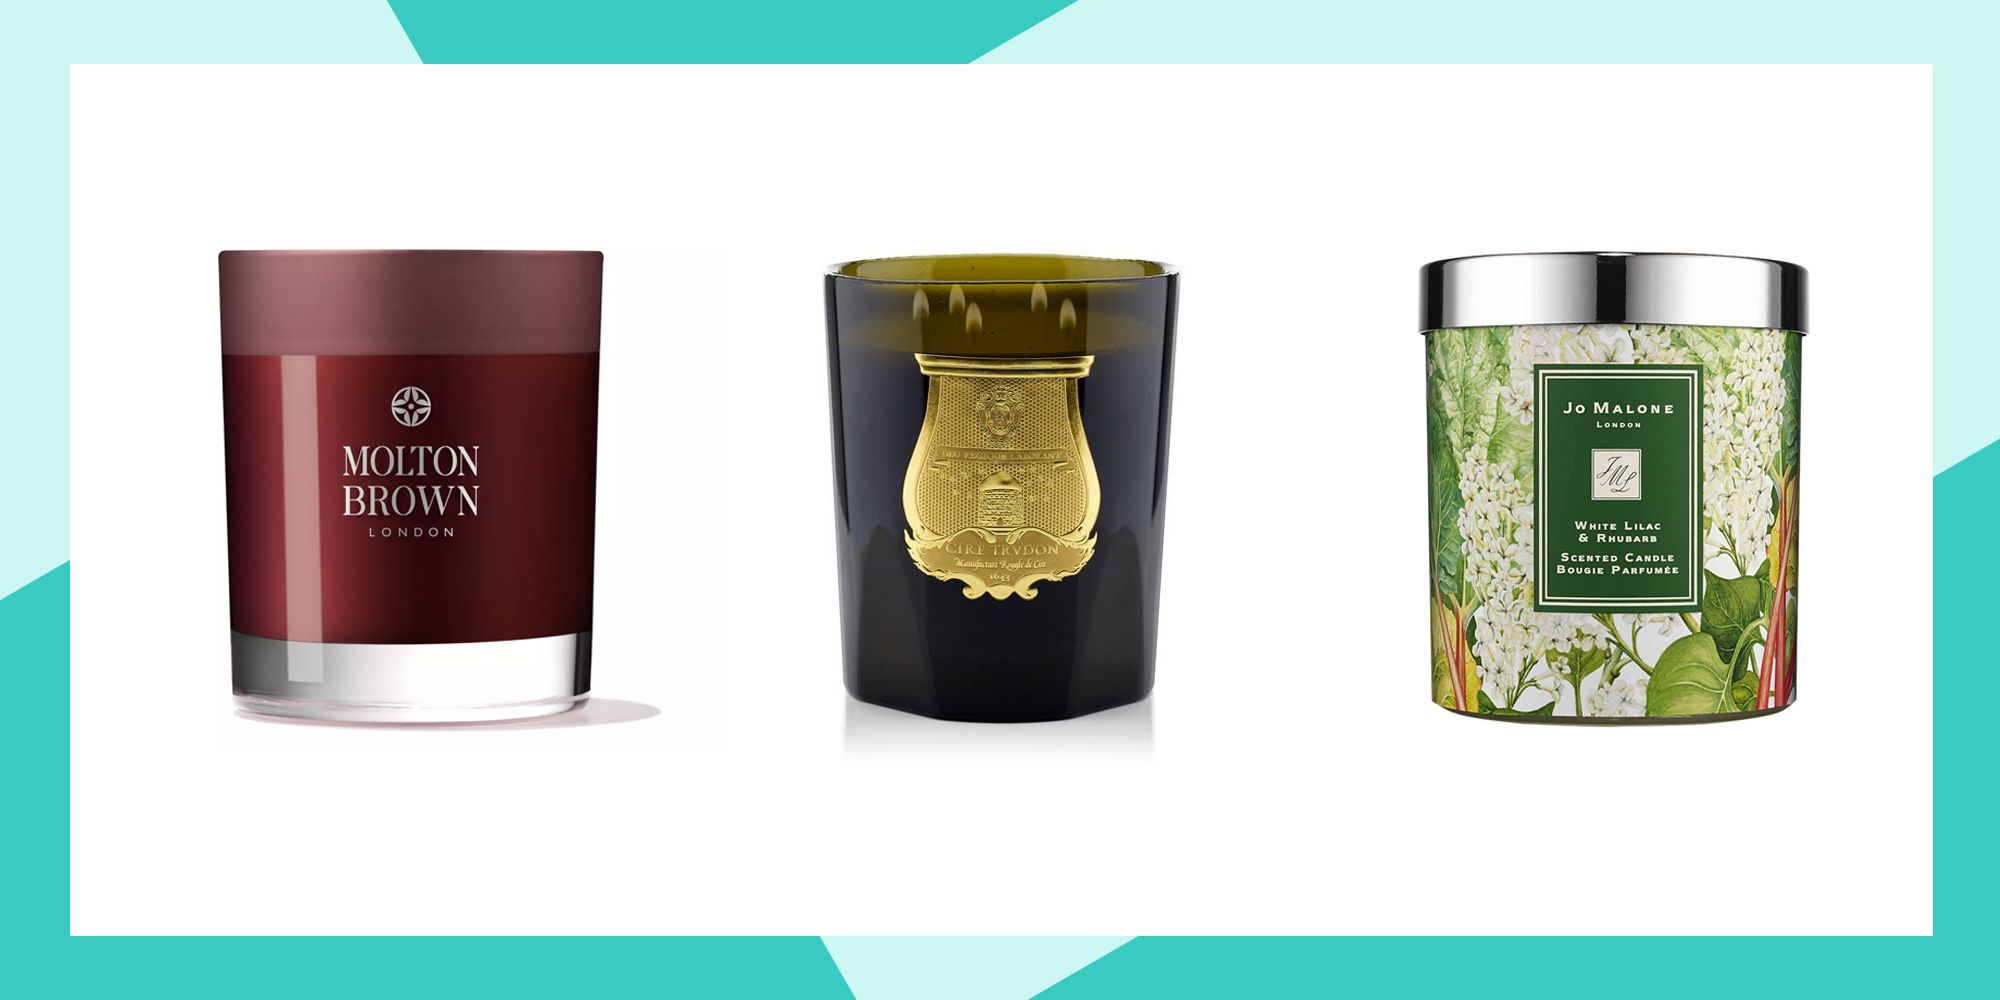 7 scented candles our homes editor can't wait to buy for spring